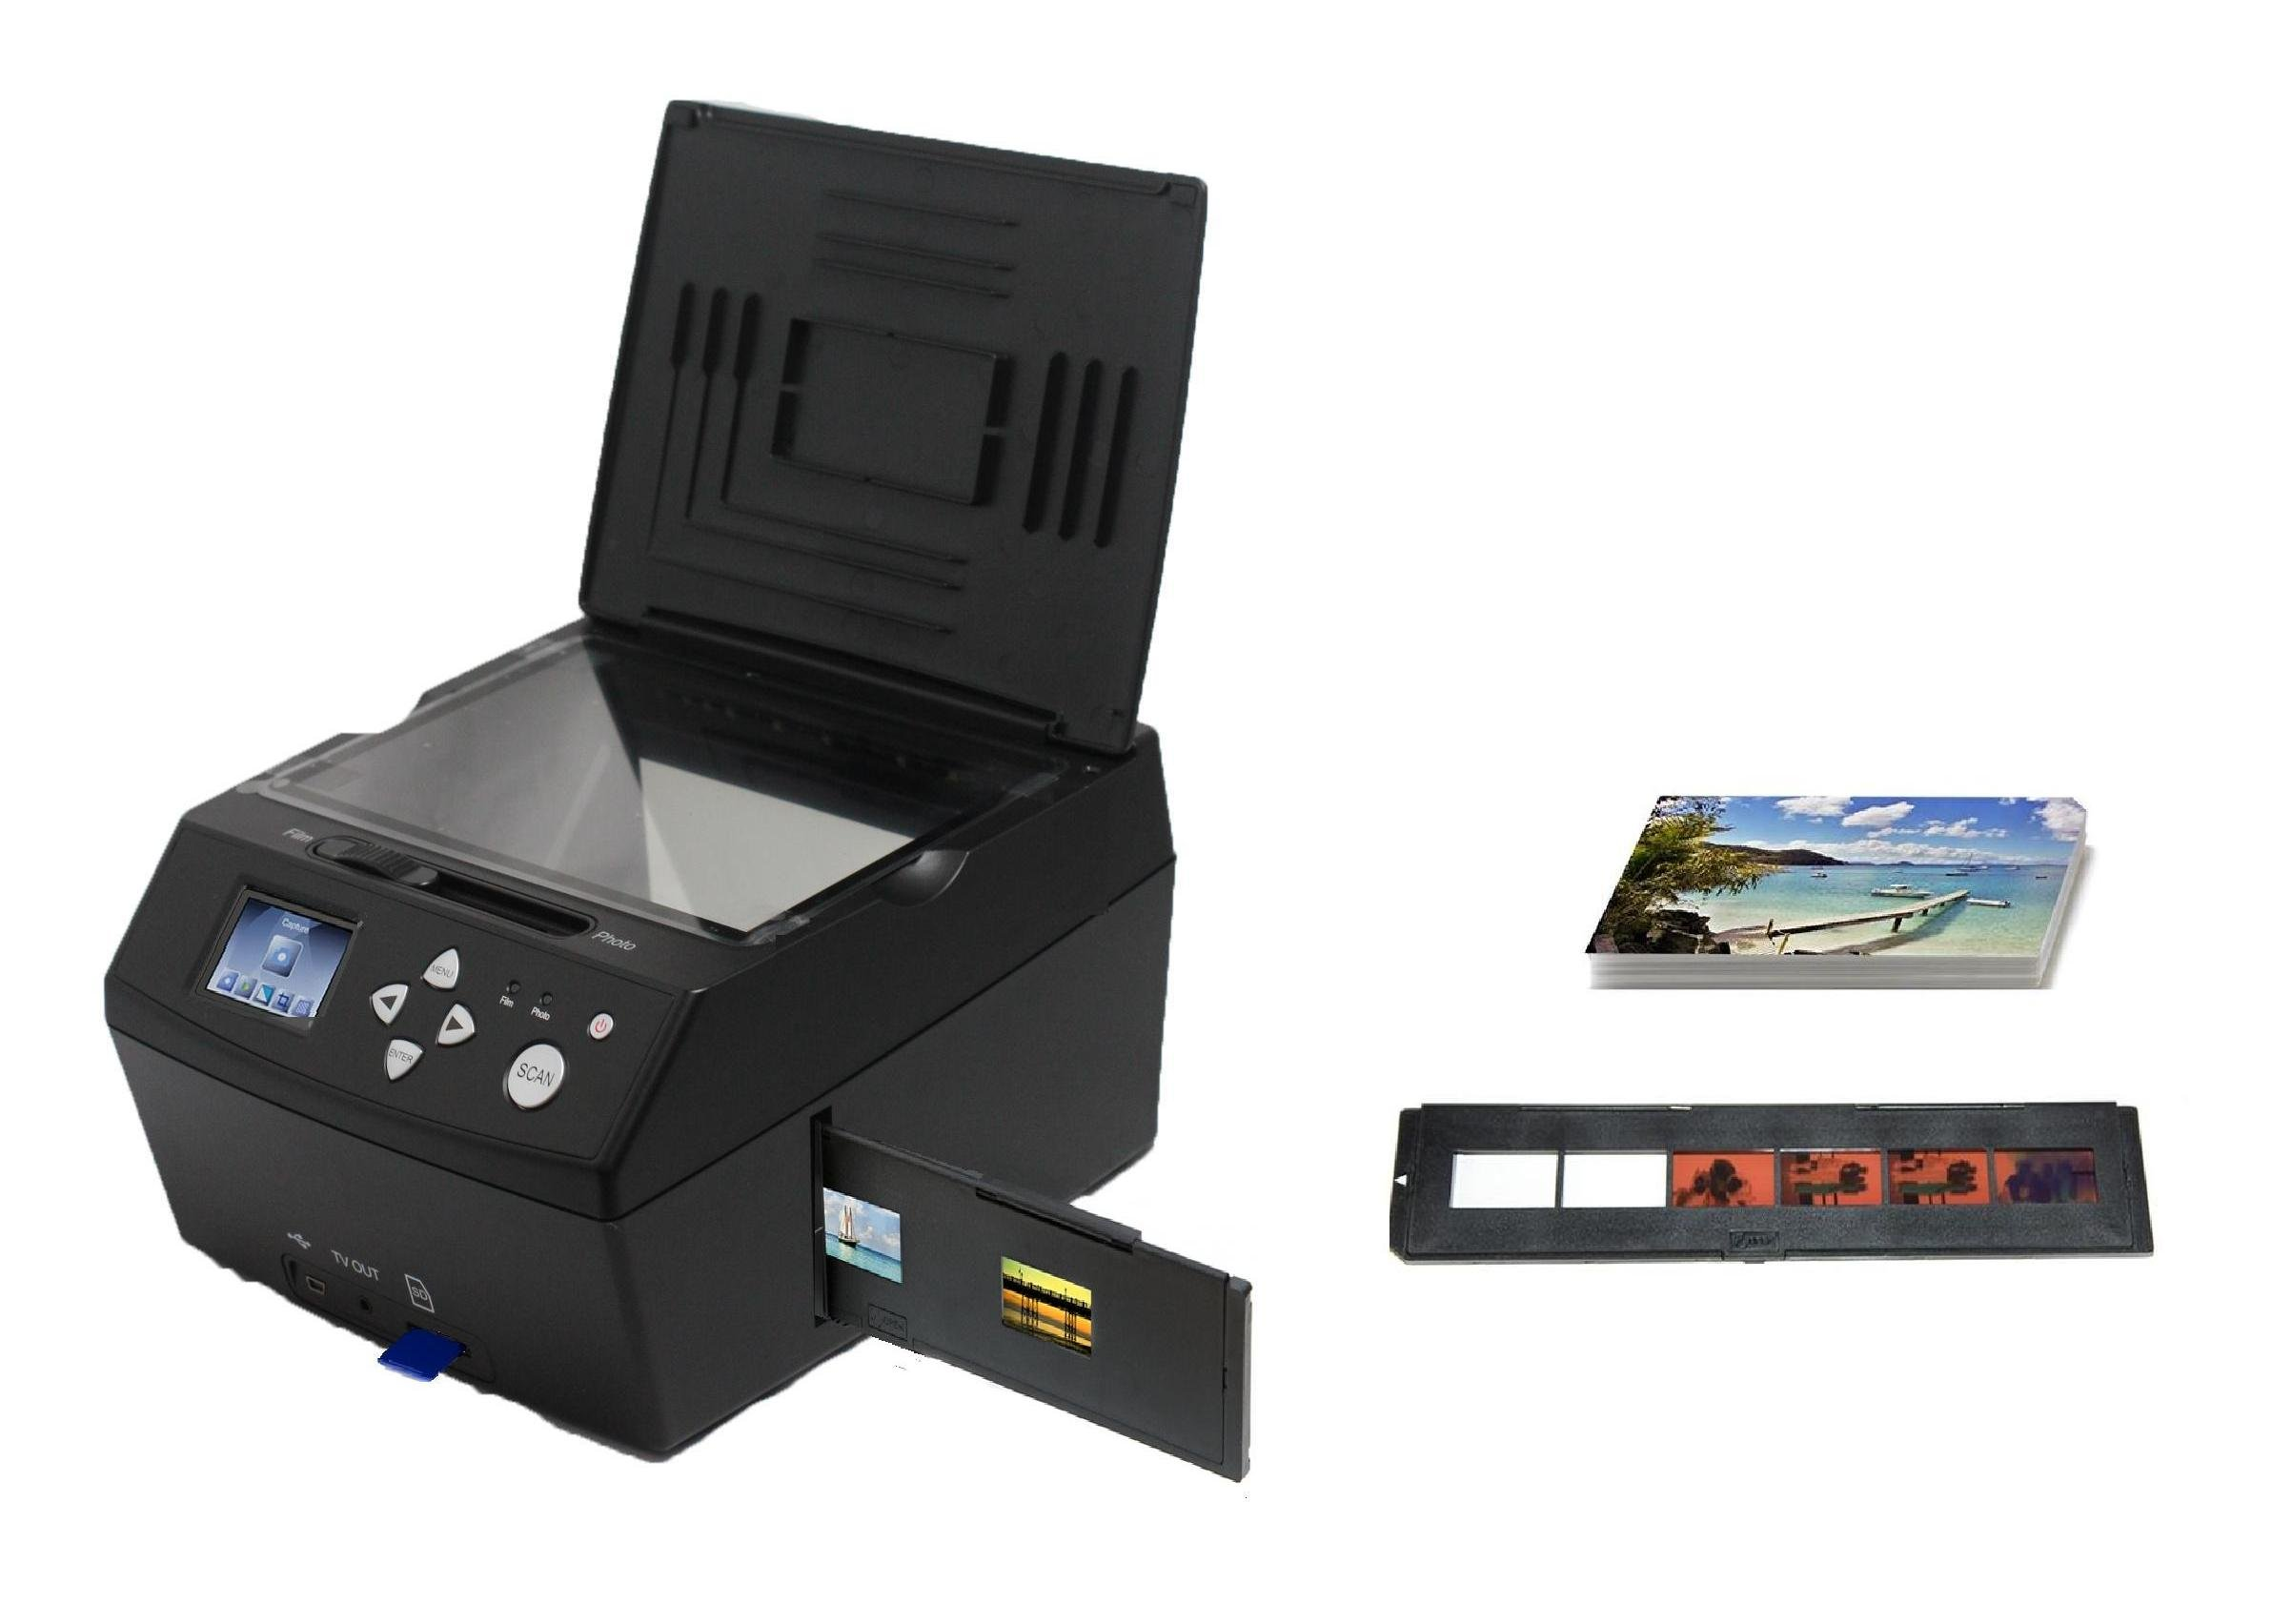 Introducing the latest SVP Model PS6800 4GB Digital Photo / Negative Films / Slides Scanner with built-in 2.4'' LCD Screen